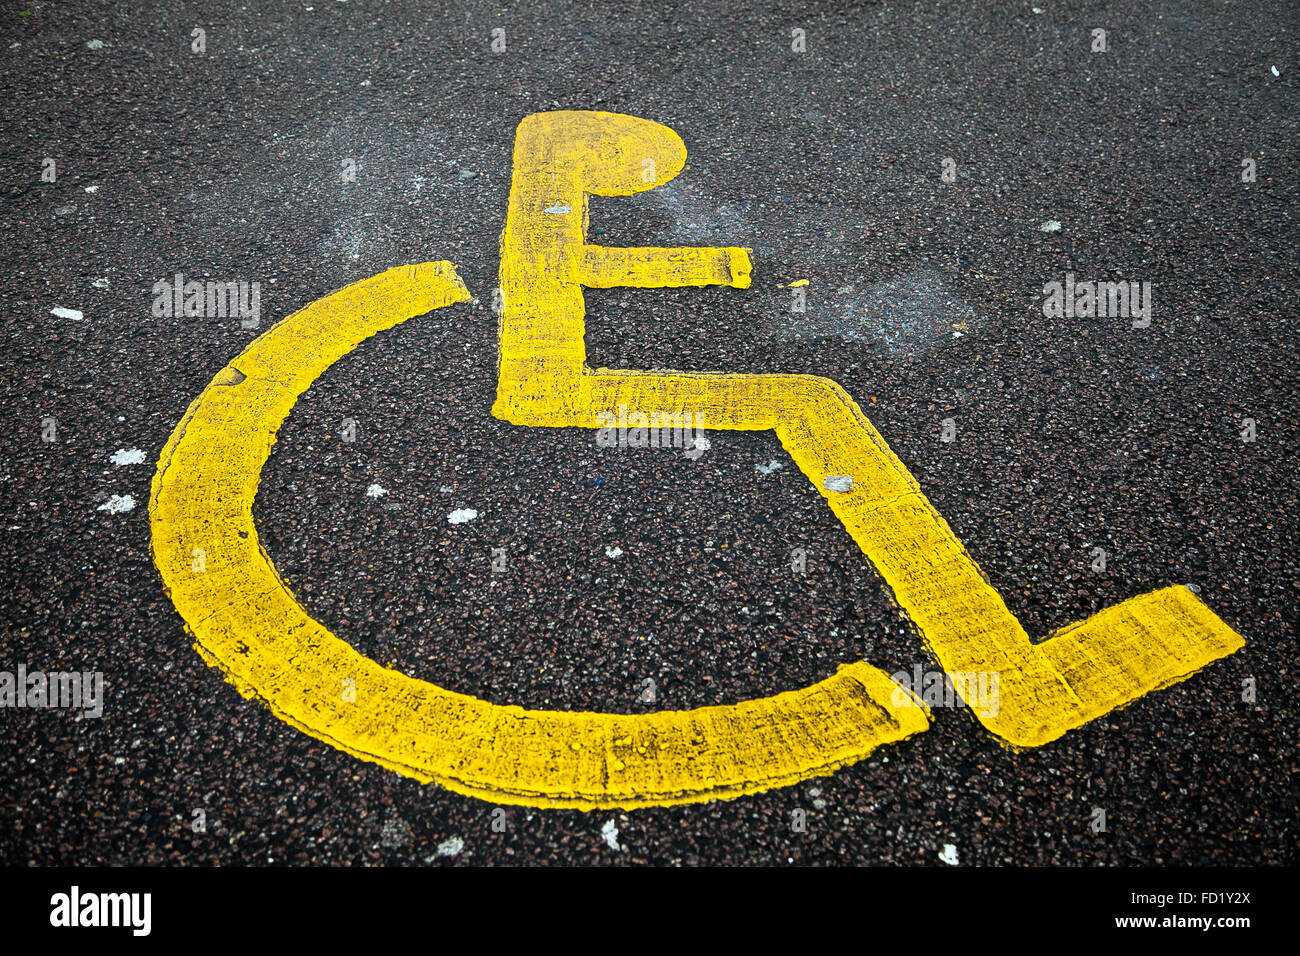 yellow wheelchair best chair after lower back surgery sign on road stock photos painted icon of in a disable parking bay image